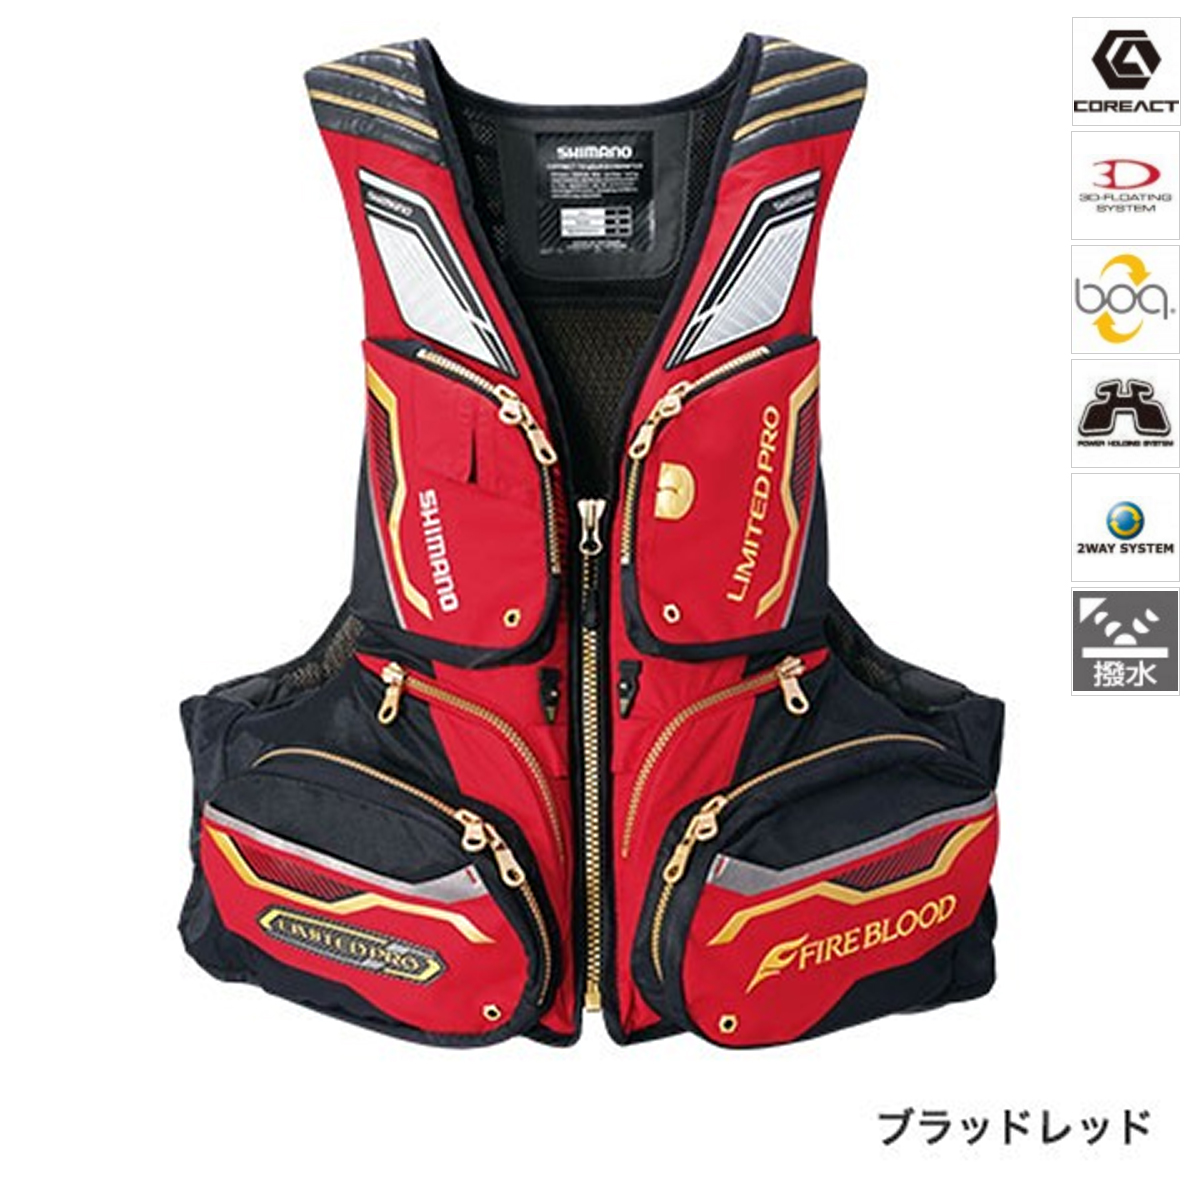 シマノ NEXUS FLOATING VEST LIMITED PRO VF-113Q 2XL ブラッドレッド